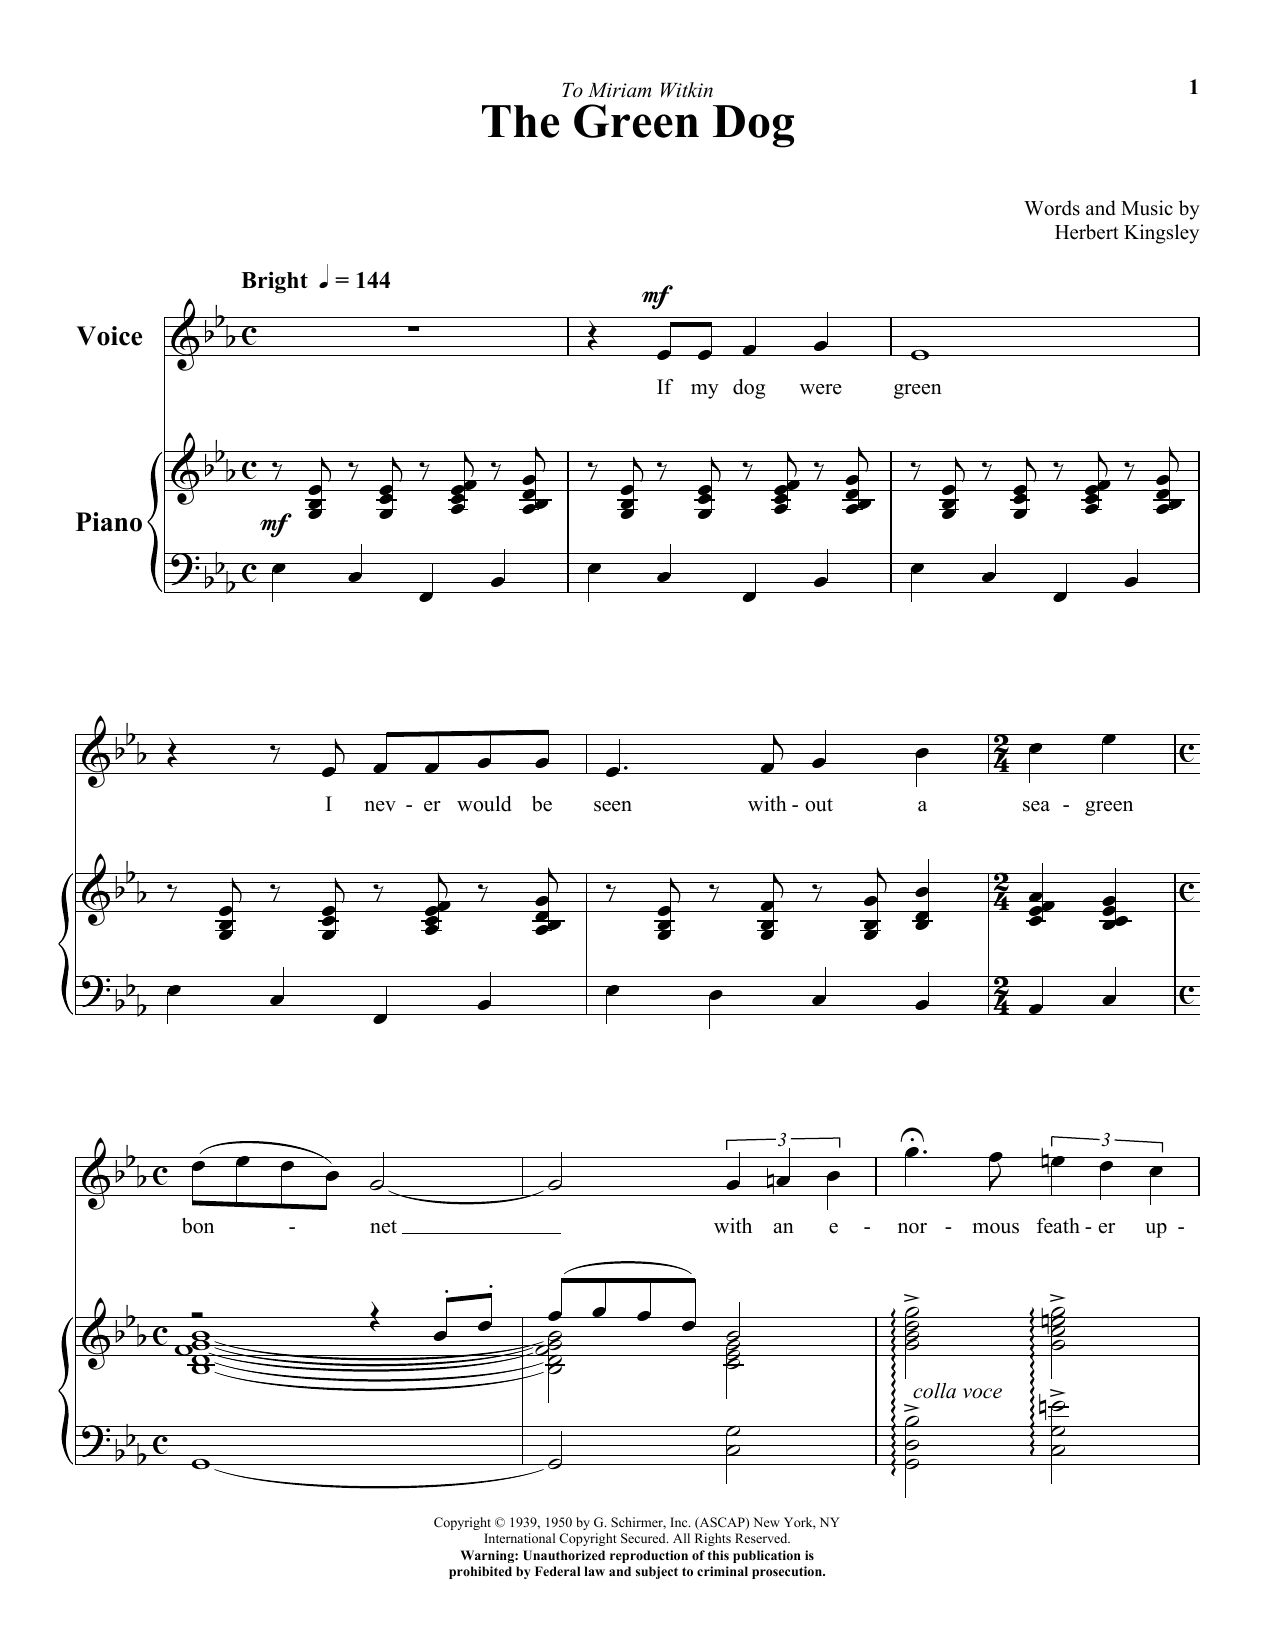 The Green Dog Sheet Music | Herbert Kingsley | Piano & Vocal - Free Printable Sheet Music For Voice And Piano